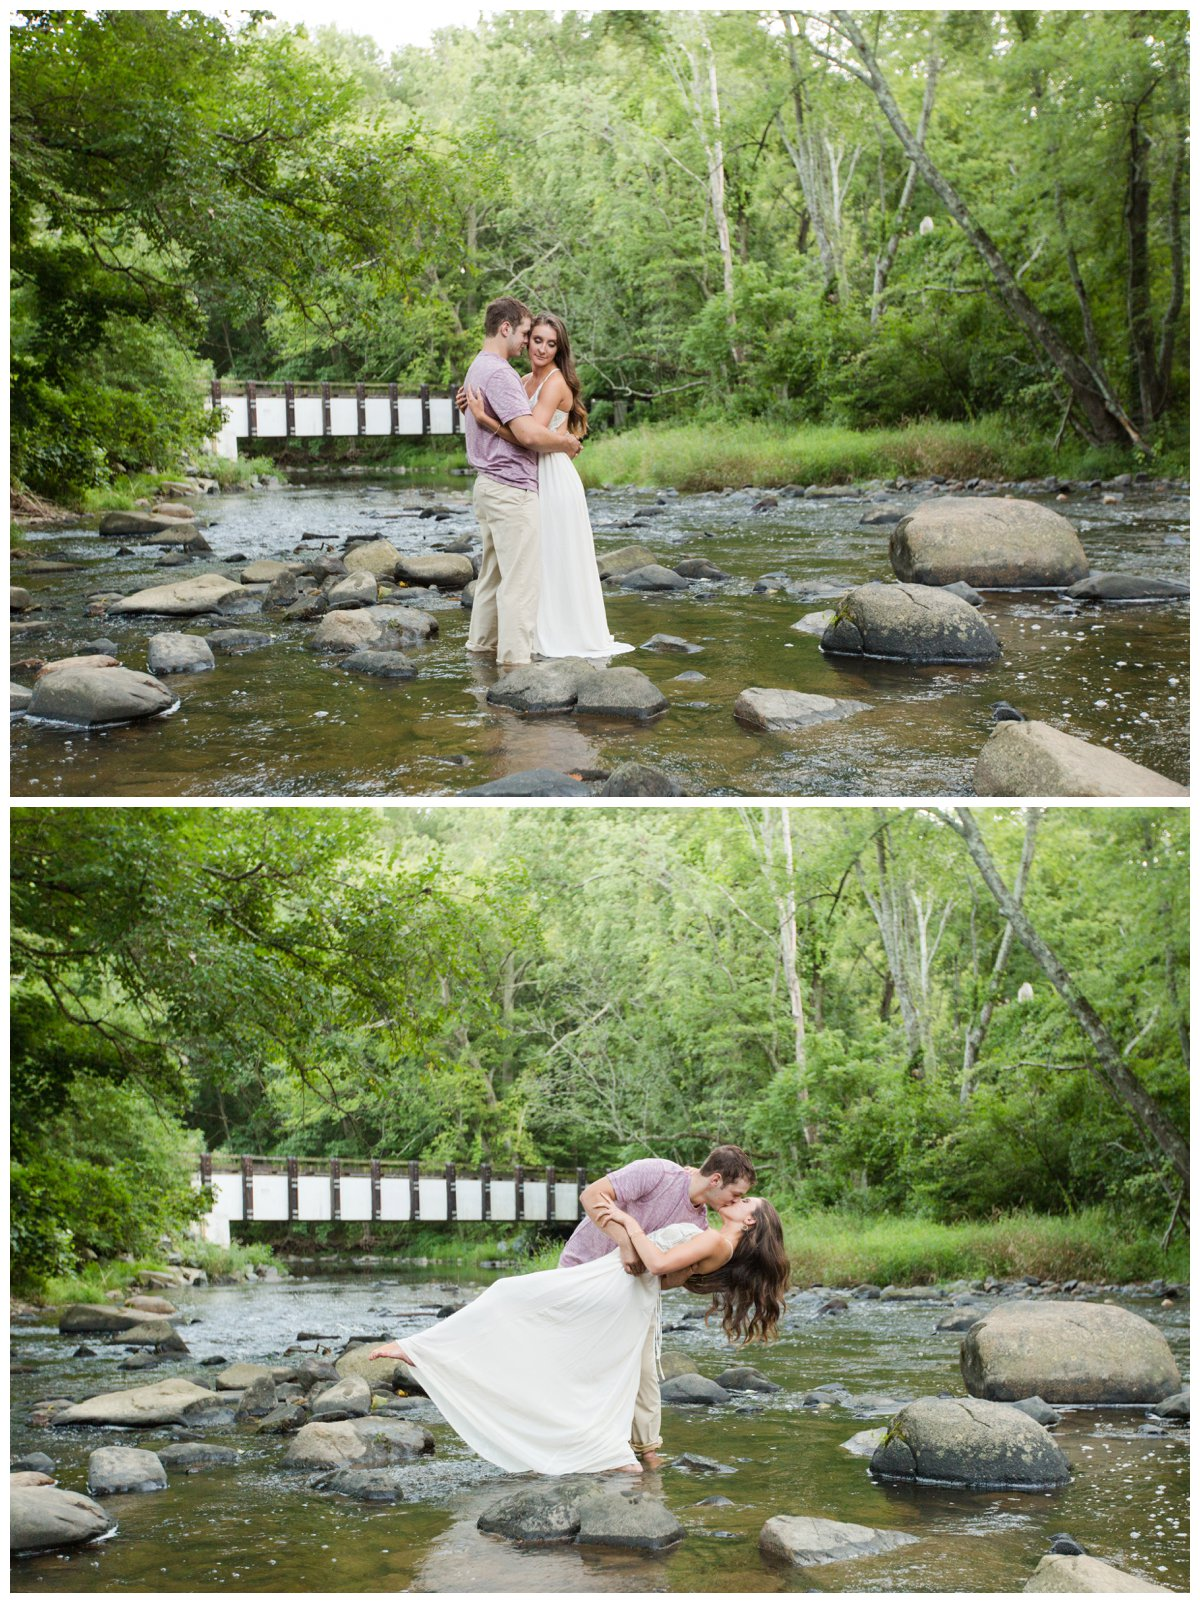 Jerusalem Mills Bohemian Engagement Photography in a stream in a white dress. He is dipping her and kissing her.